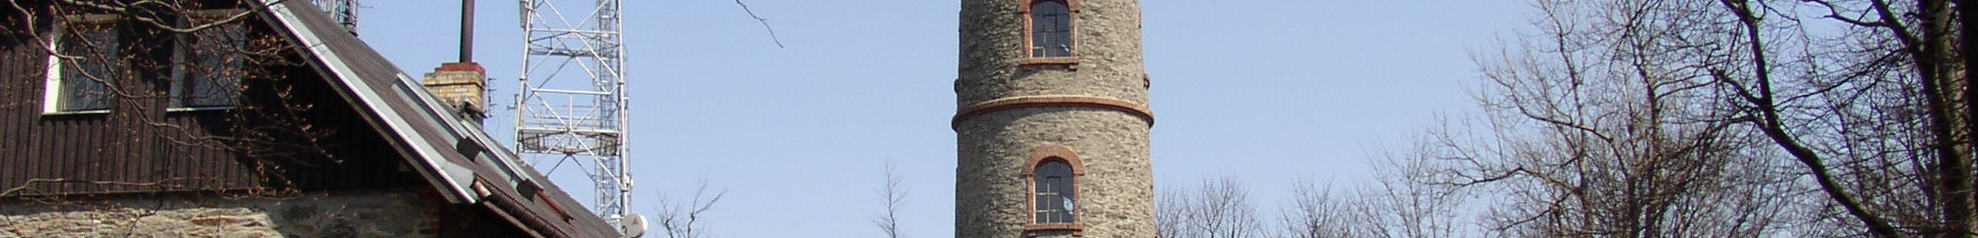 Tower in the neighborhood